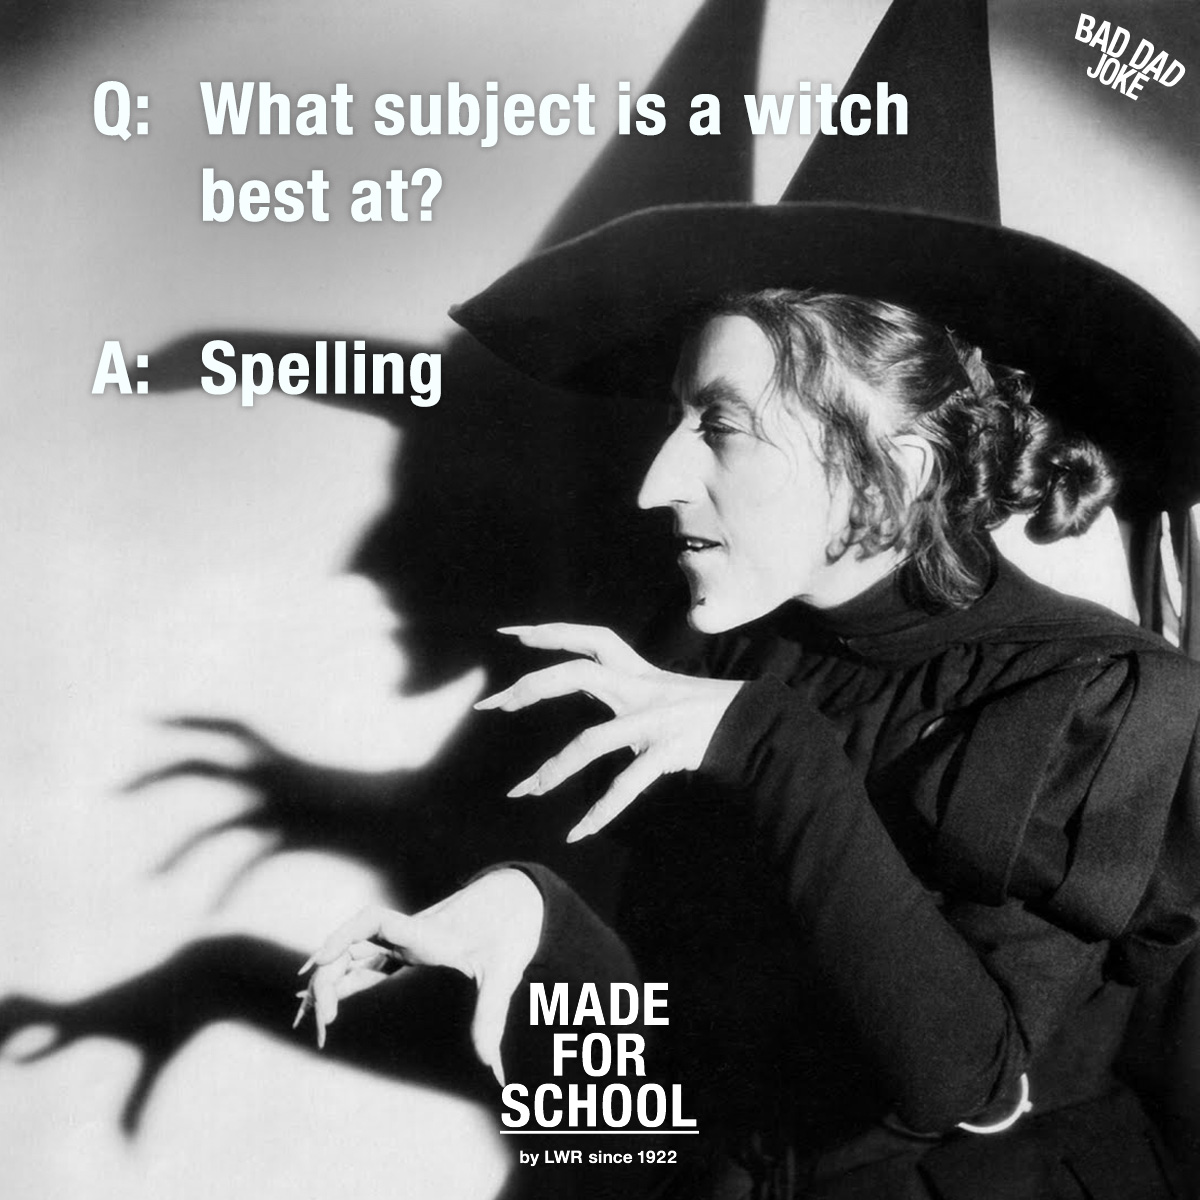 Bad Dad Joke: What subject is a Witch good at?